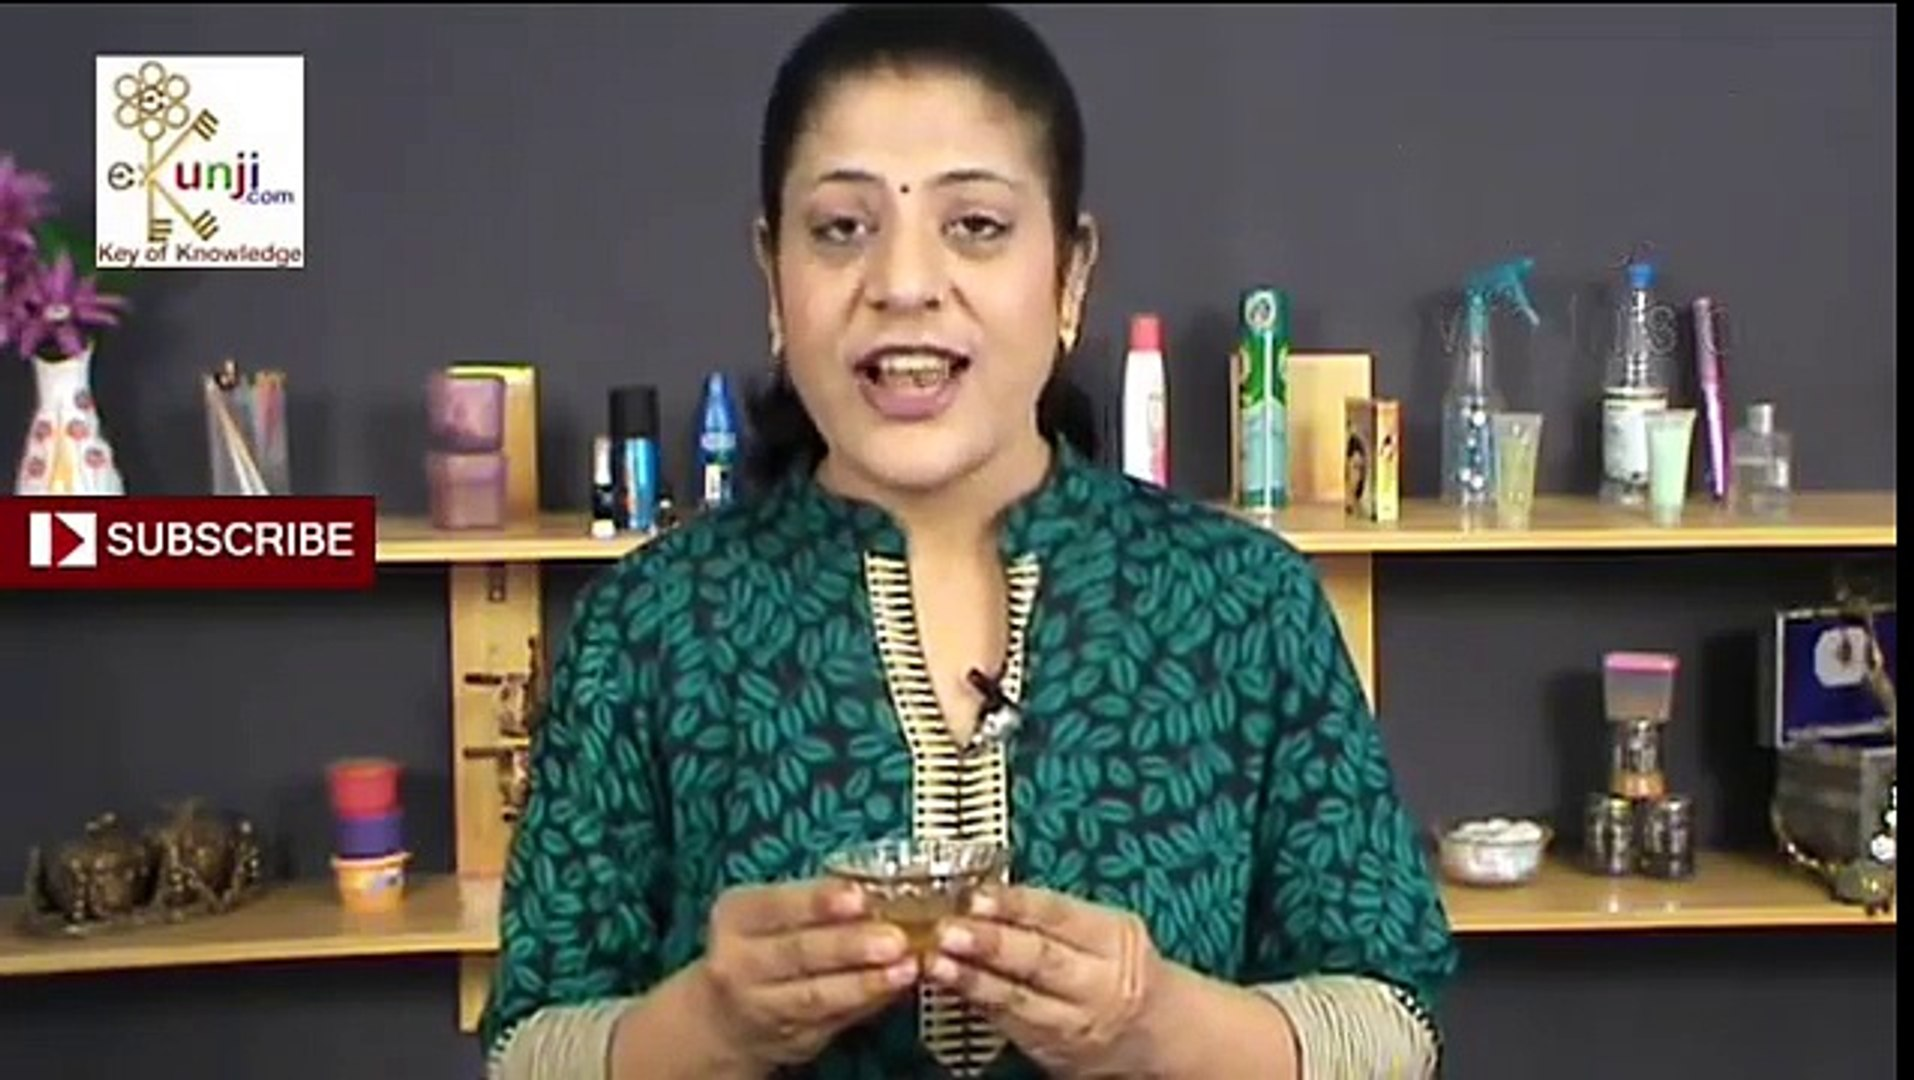 Hand Care Tips - 3 Natural Beauty Tips For Hand Care - Beauty Tips